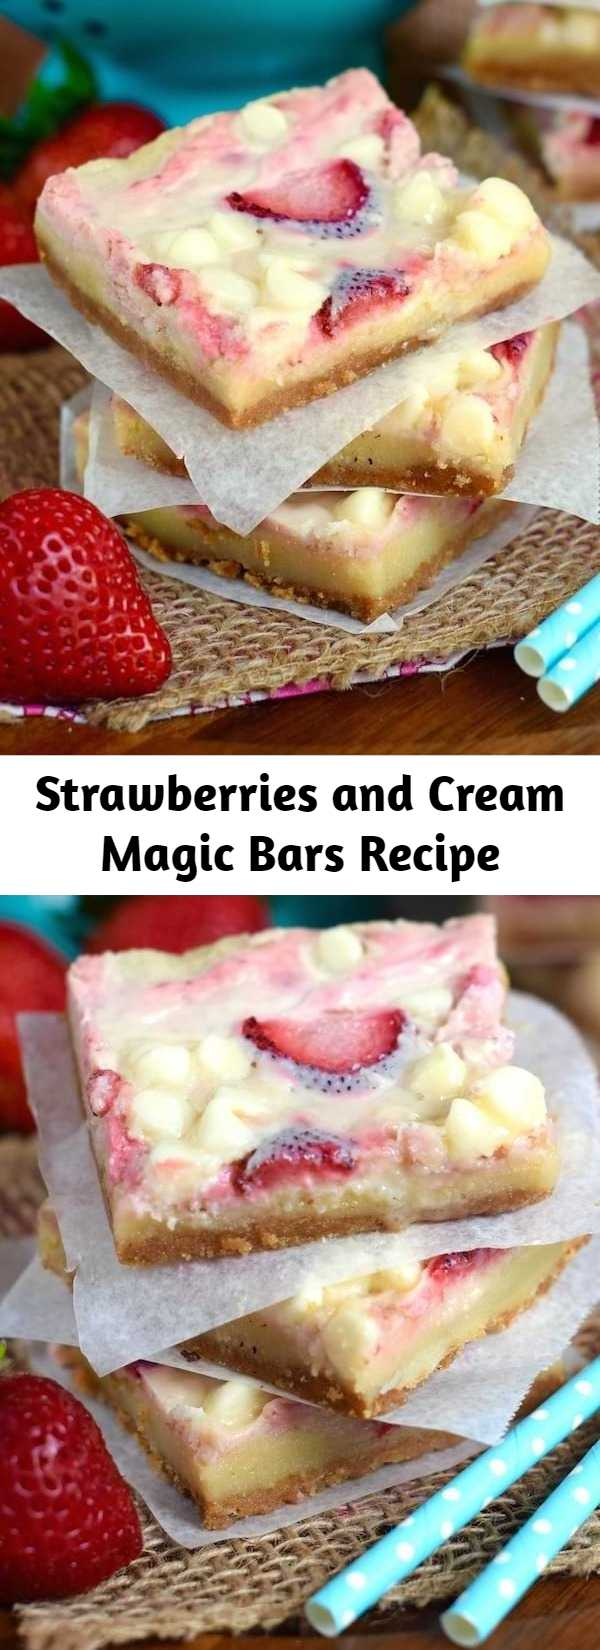 Strawberries and Cream Magic Bars Recipe - These Strawberries and Cream Magic Bars are pure magic.  Made with fresh strawberries and a sugar cookie layer, they are seriously amazing!